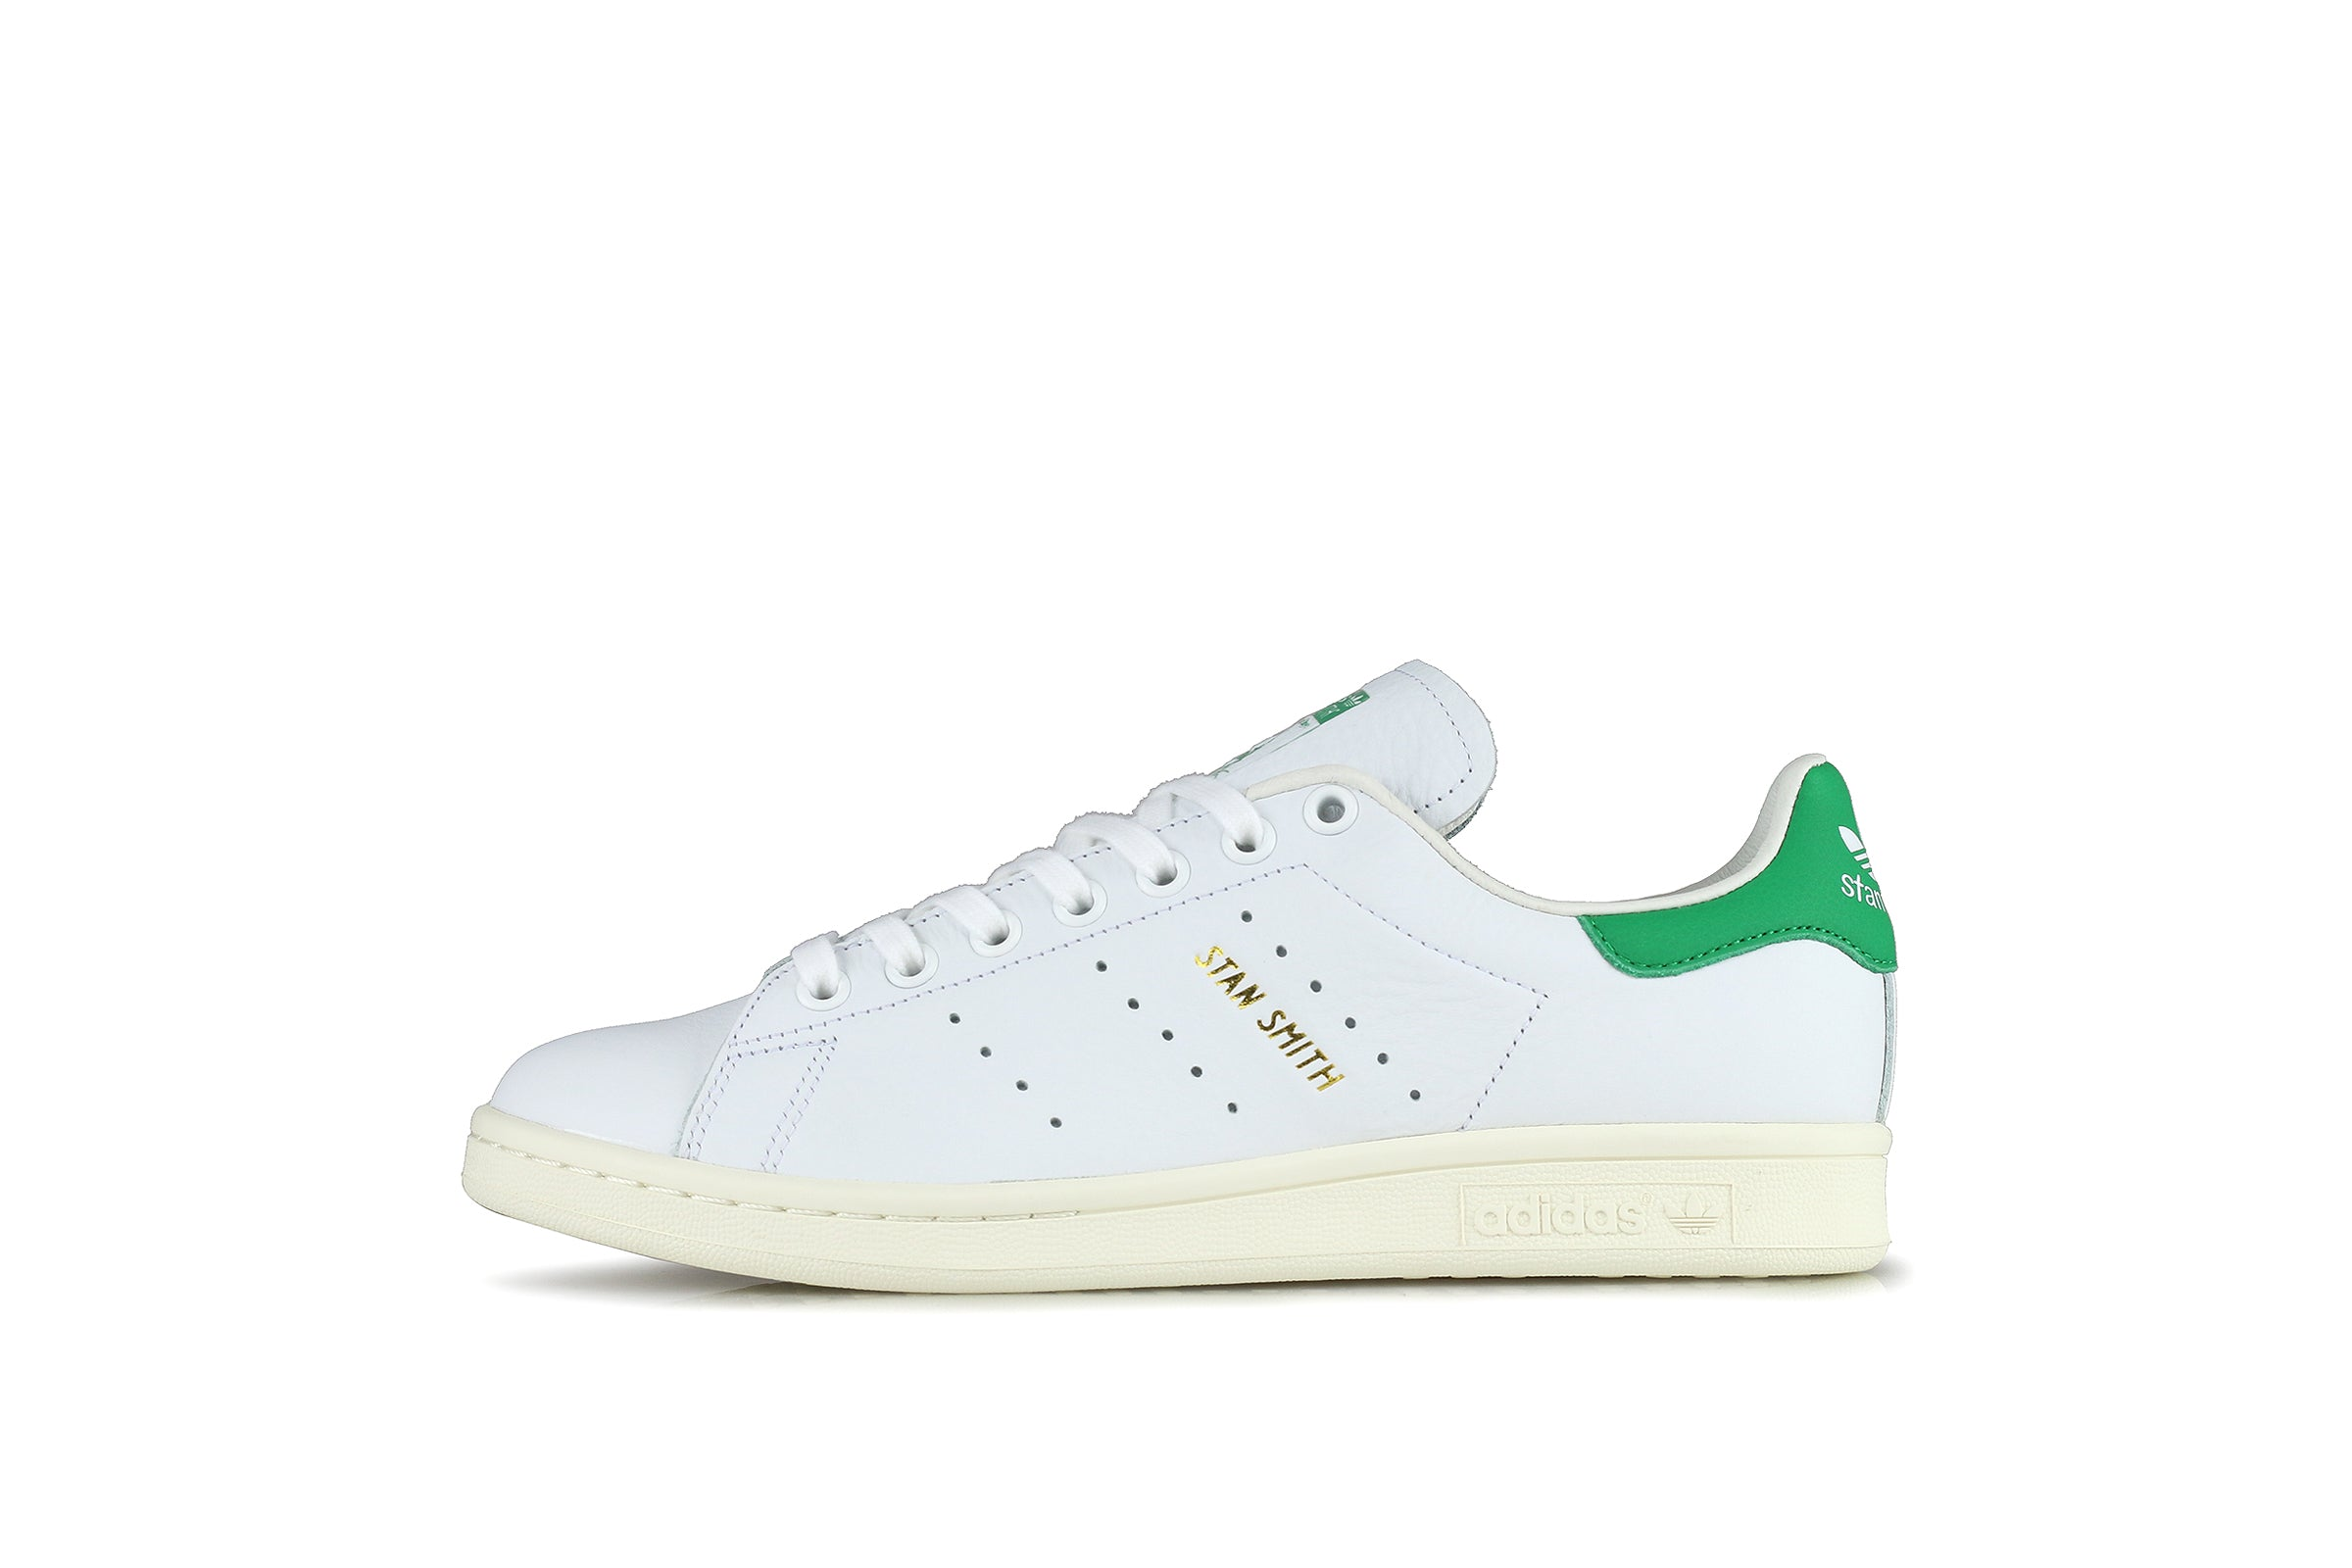 quality design bec91 a0a1d Adidas Stan Smith Forever